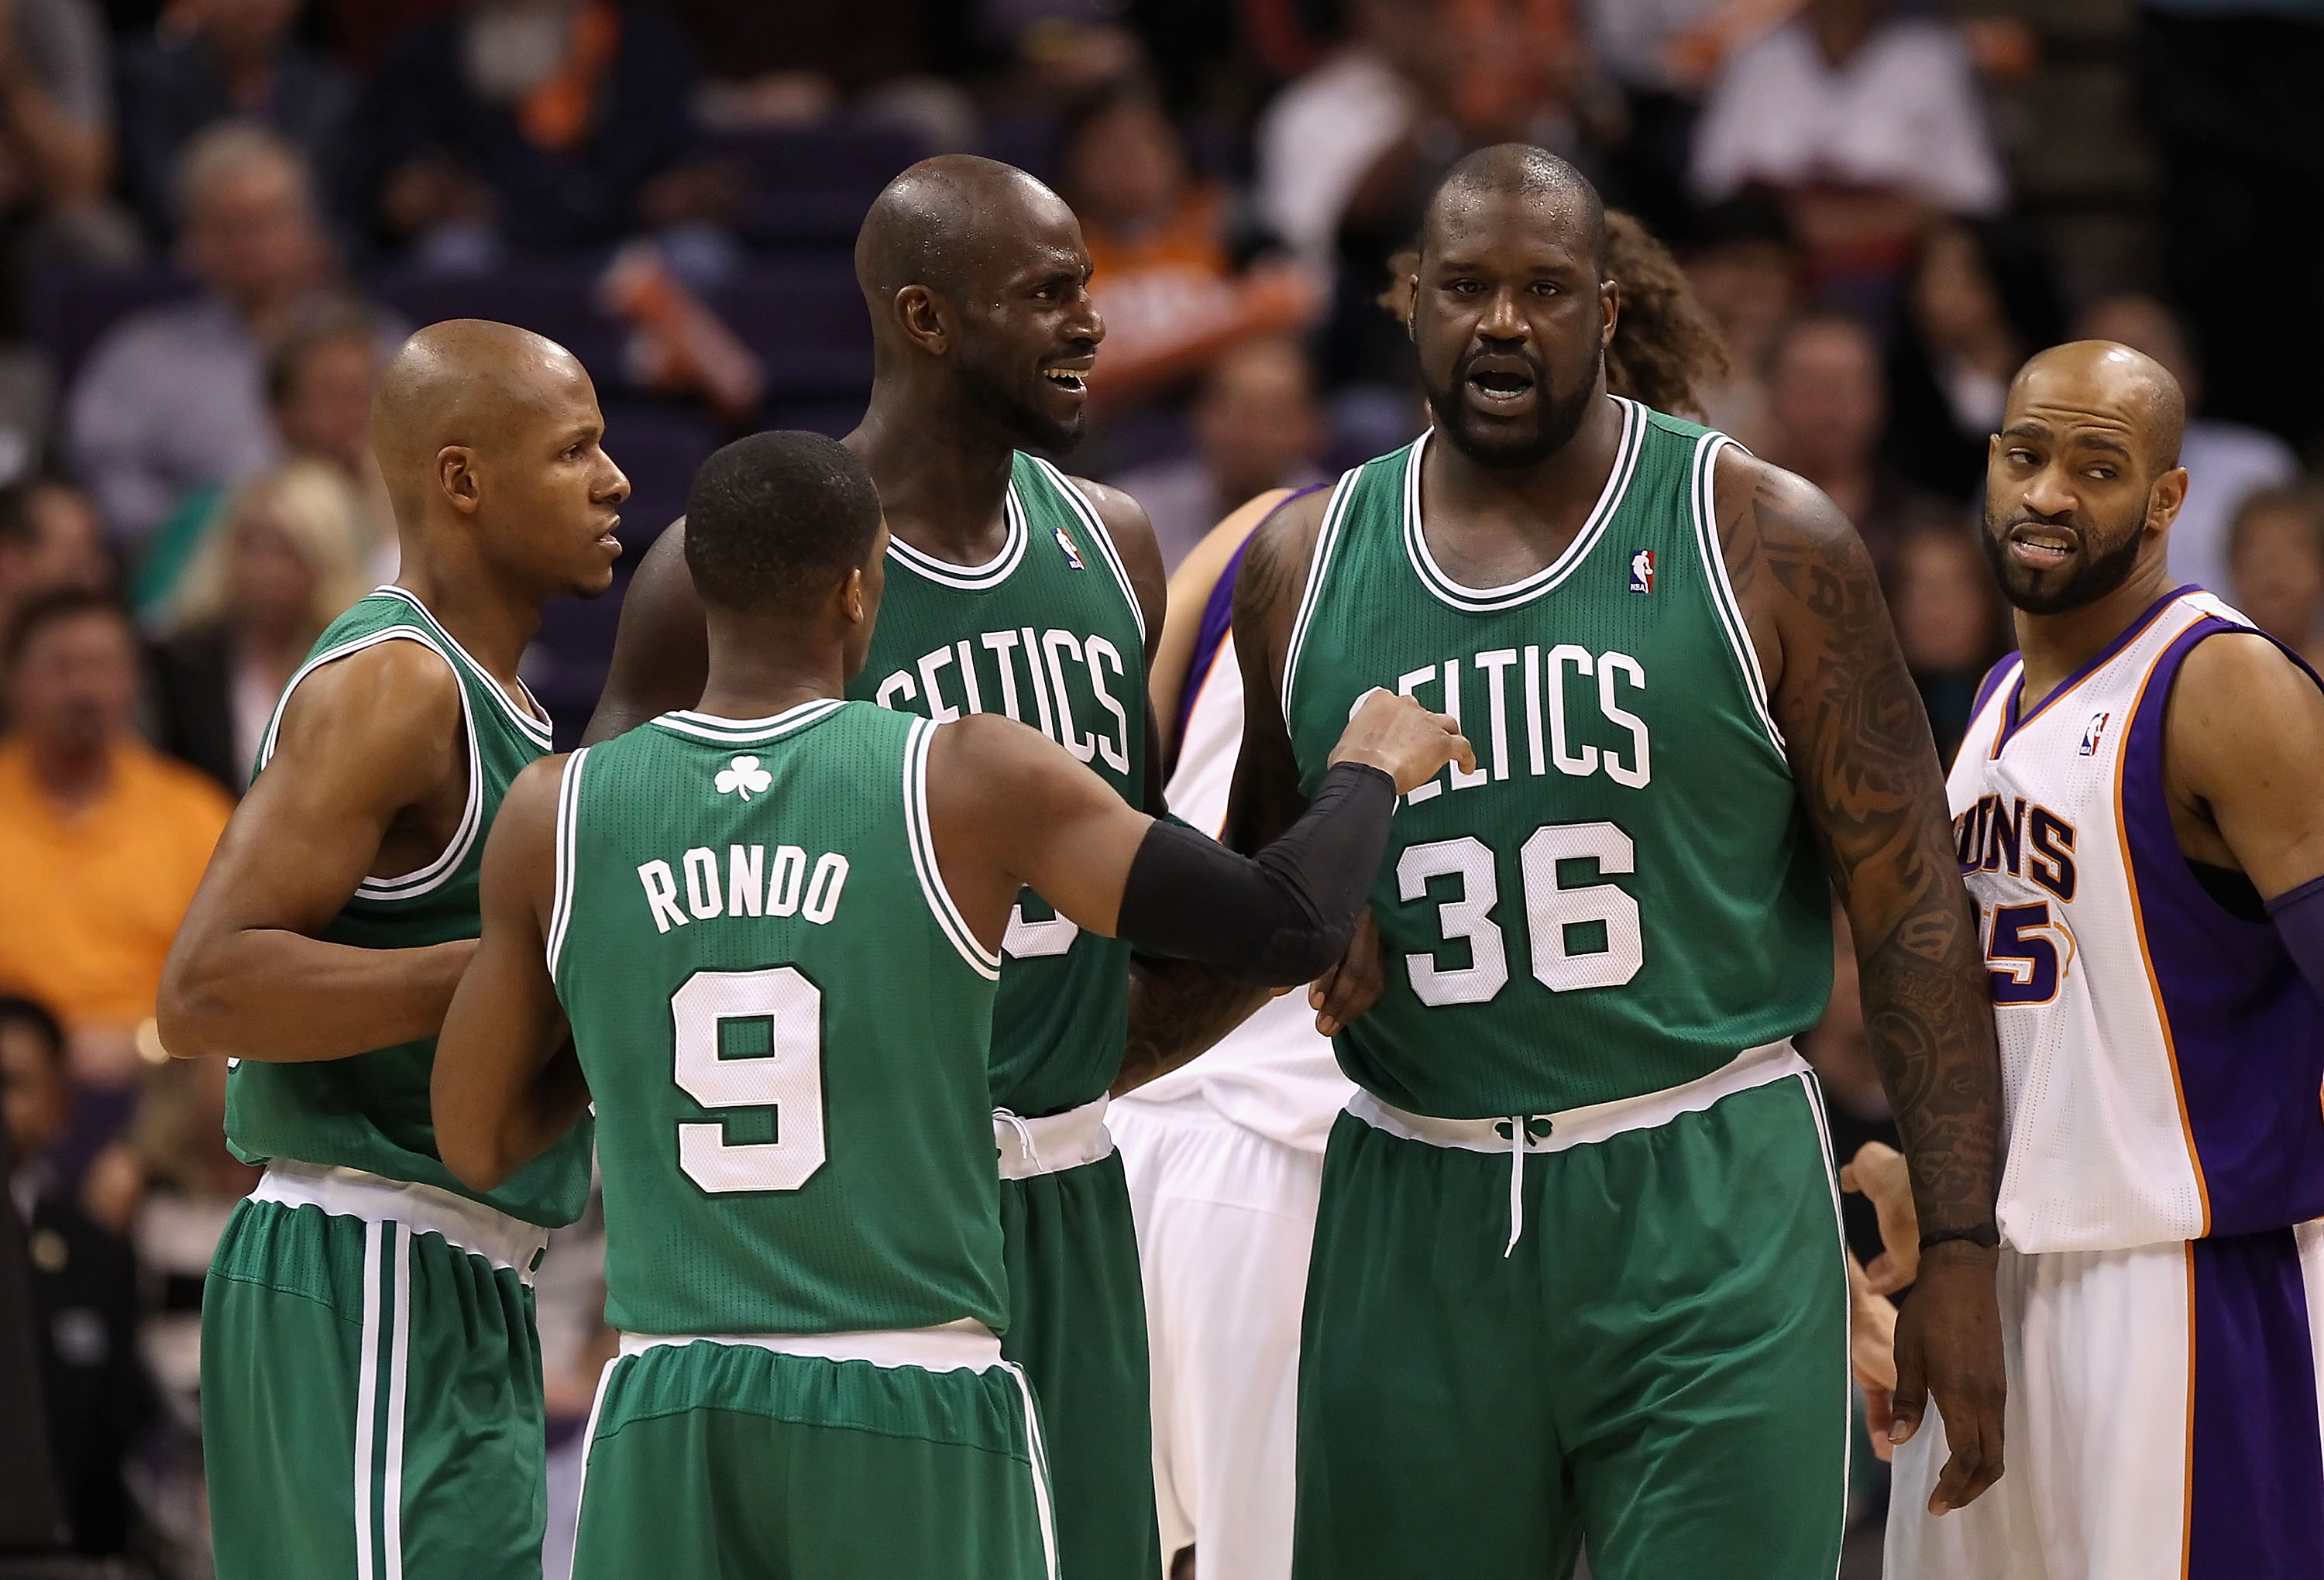 PHOENIX, AZ - JANUARY 28:  Ray Allen #20, Rajon Rondo #9, Kevin Garnett #5 and Shaquille O'Neal #36 of the Boston Celtics huddle up during the NBA game against the Phoenix Suns at US Airways Center on January 28, 2011 in Phoenix, Arizona.   The Suns defea